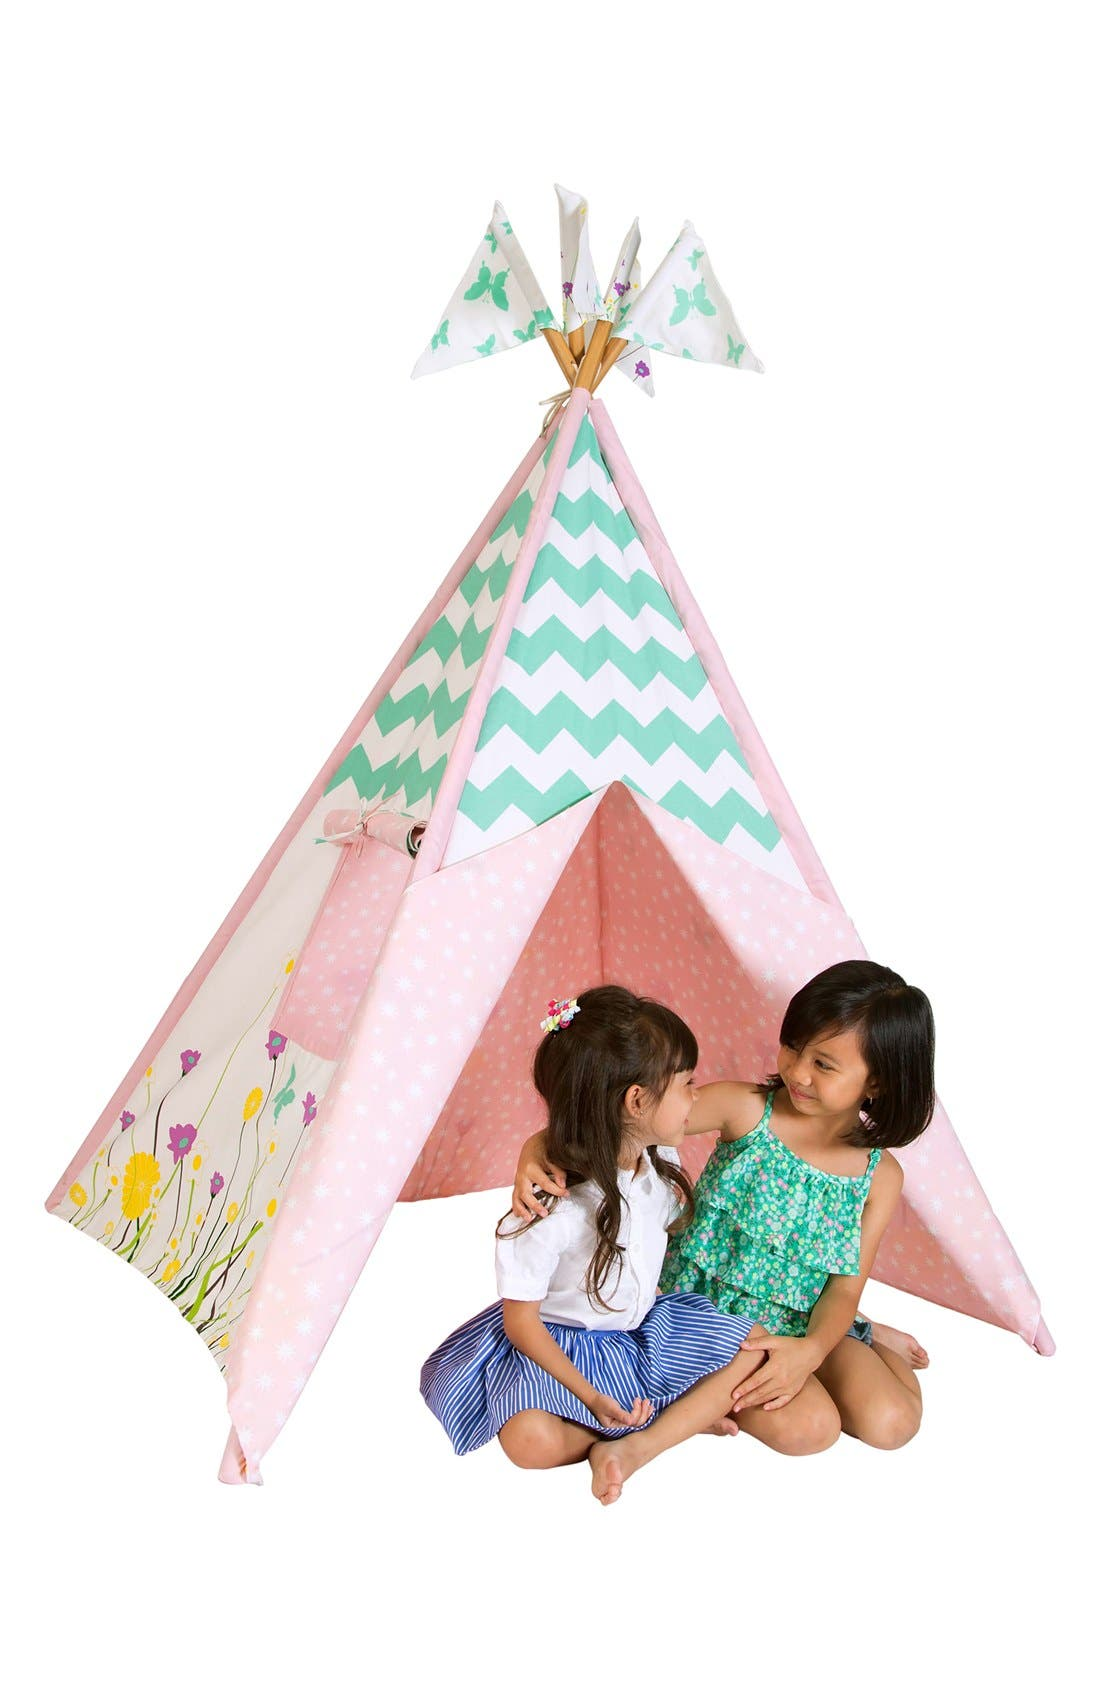 'Wildflowers' Cotton Canvas Teepee,                             Alternate thumbnail 3, color,                             BEIGE